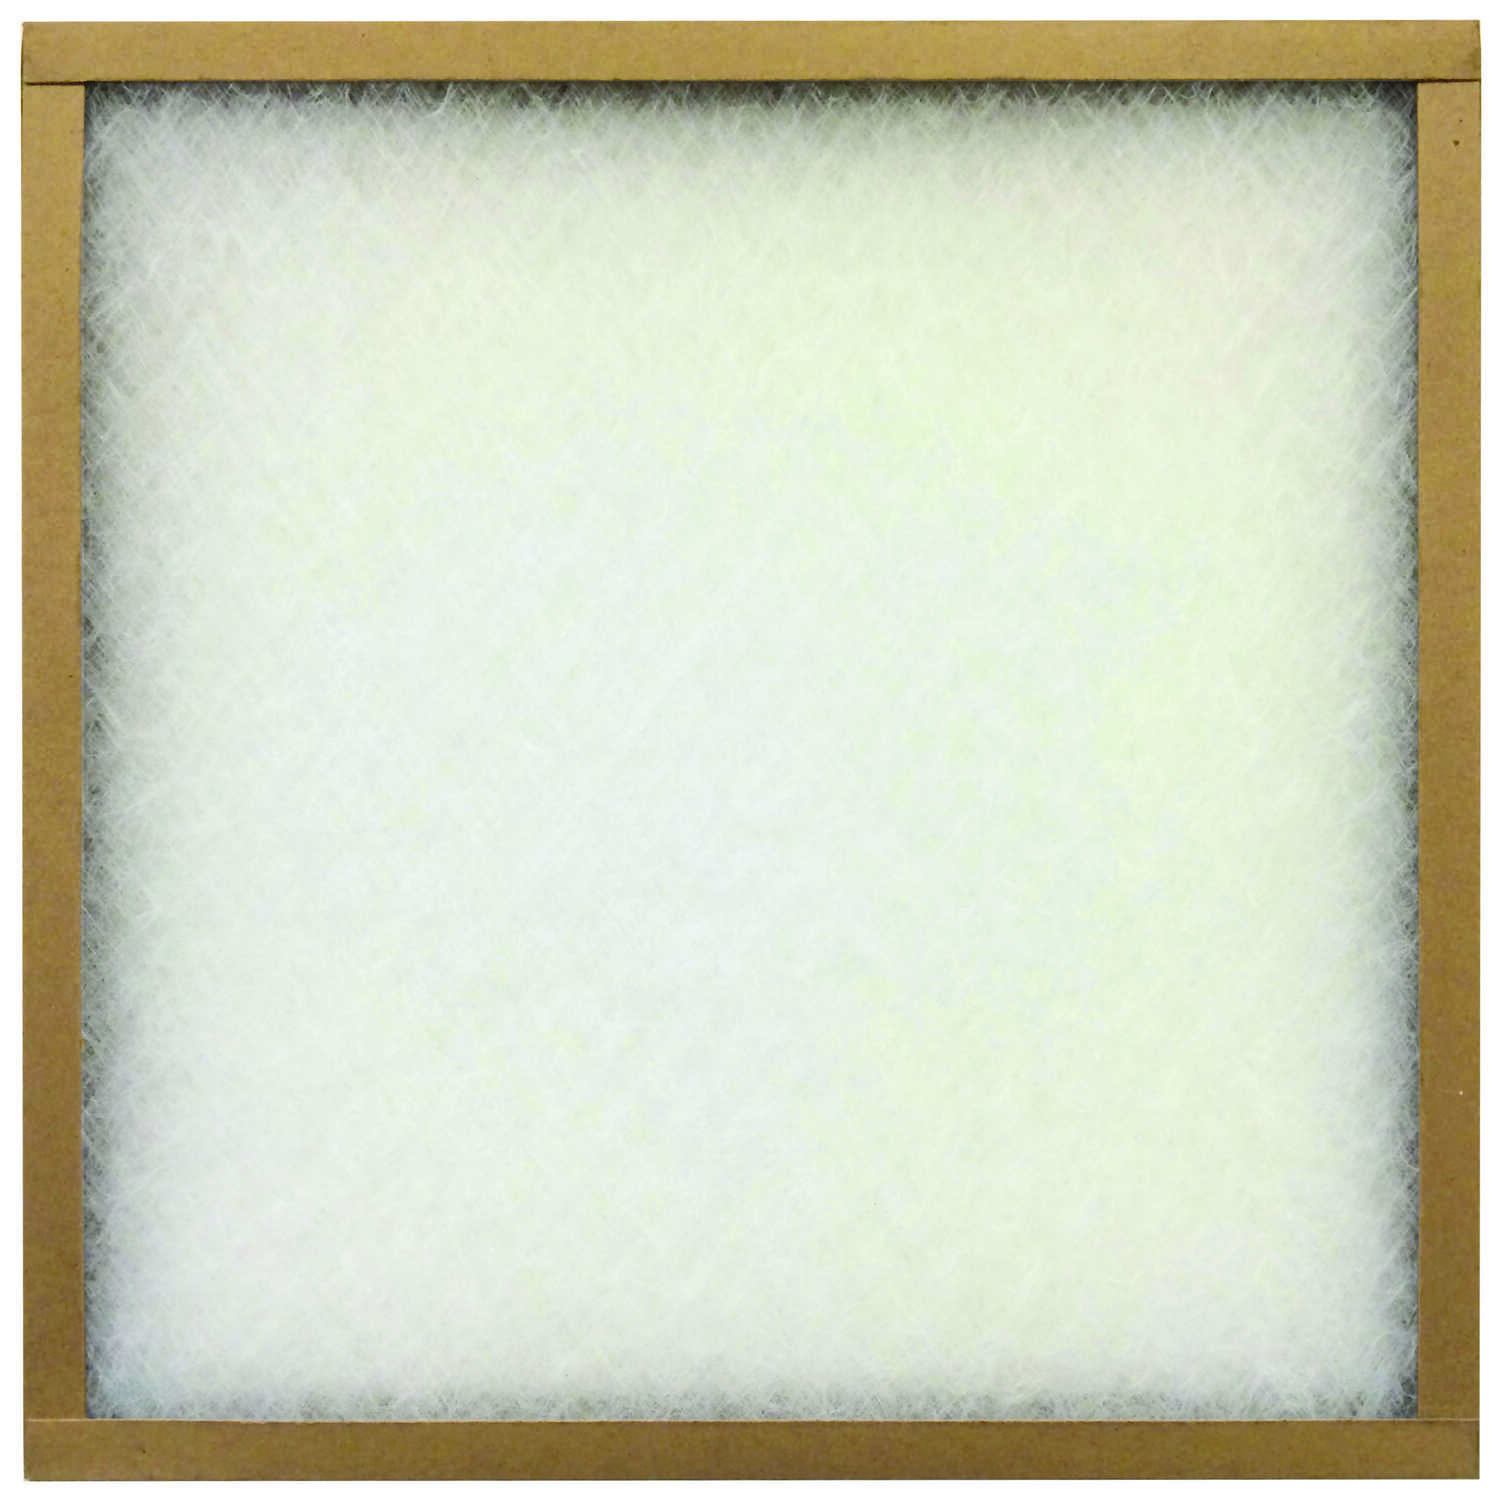 AAF Flanders  20 in. W x 25 in. H x 2 in. D Fiberglass  Air Filter